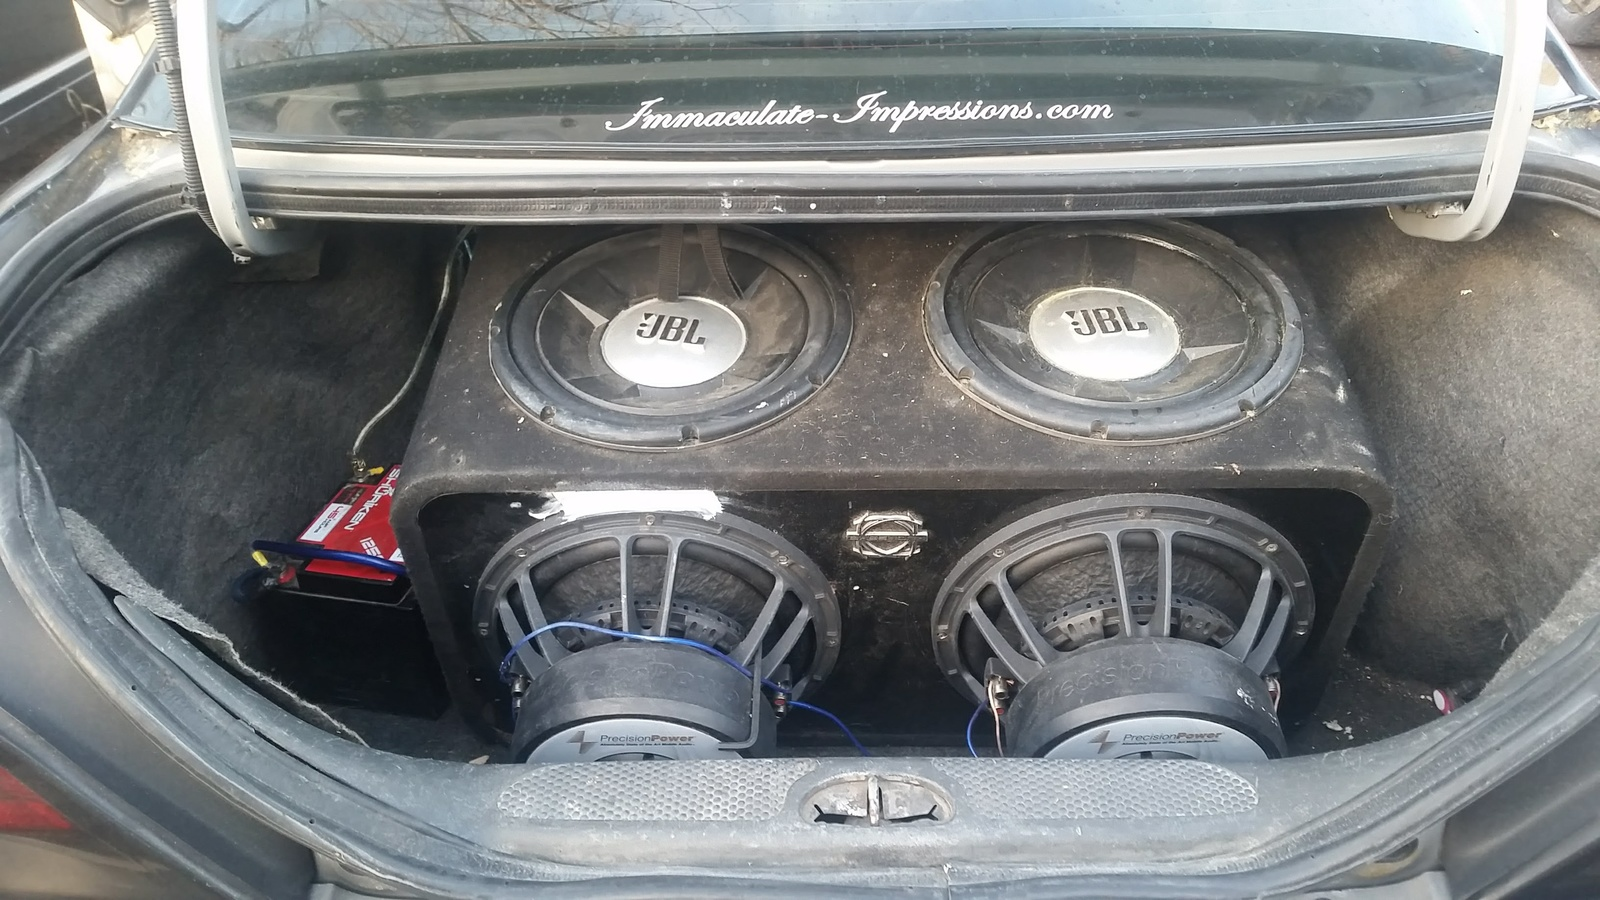 Pontiac Grand Am Questions - what is the best system and amp to put